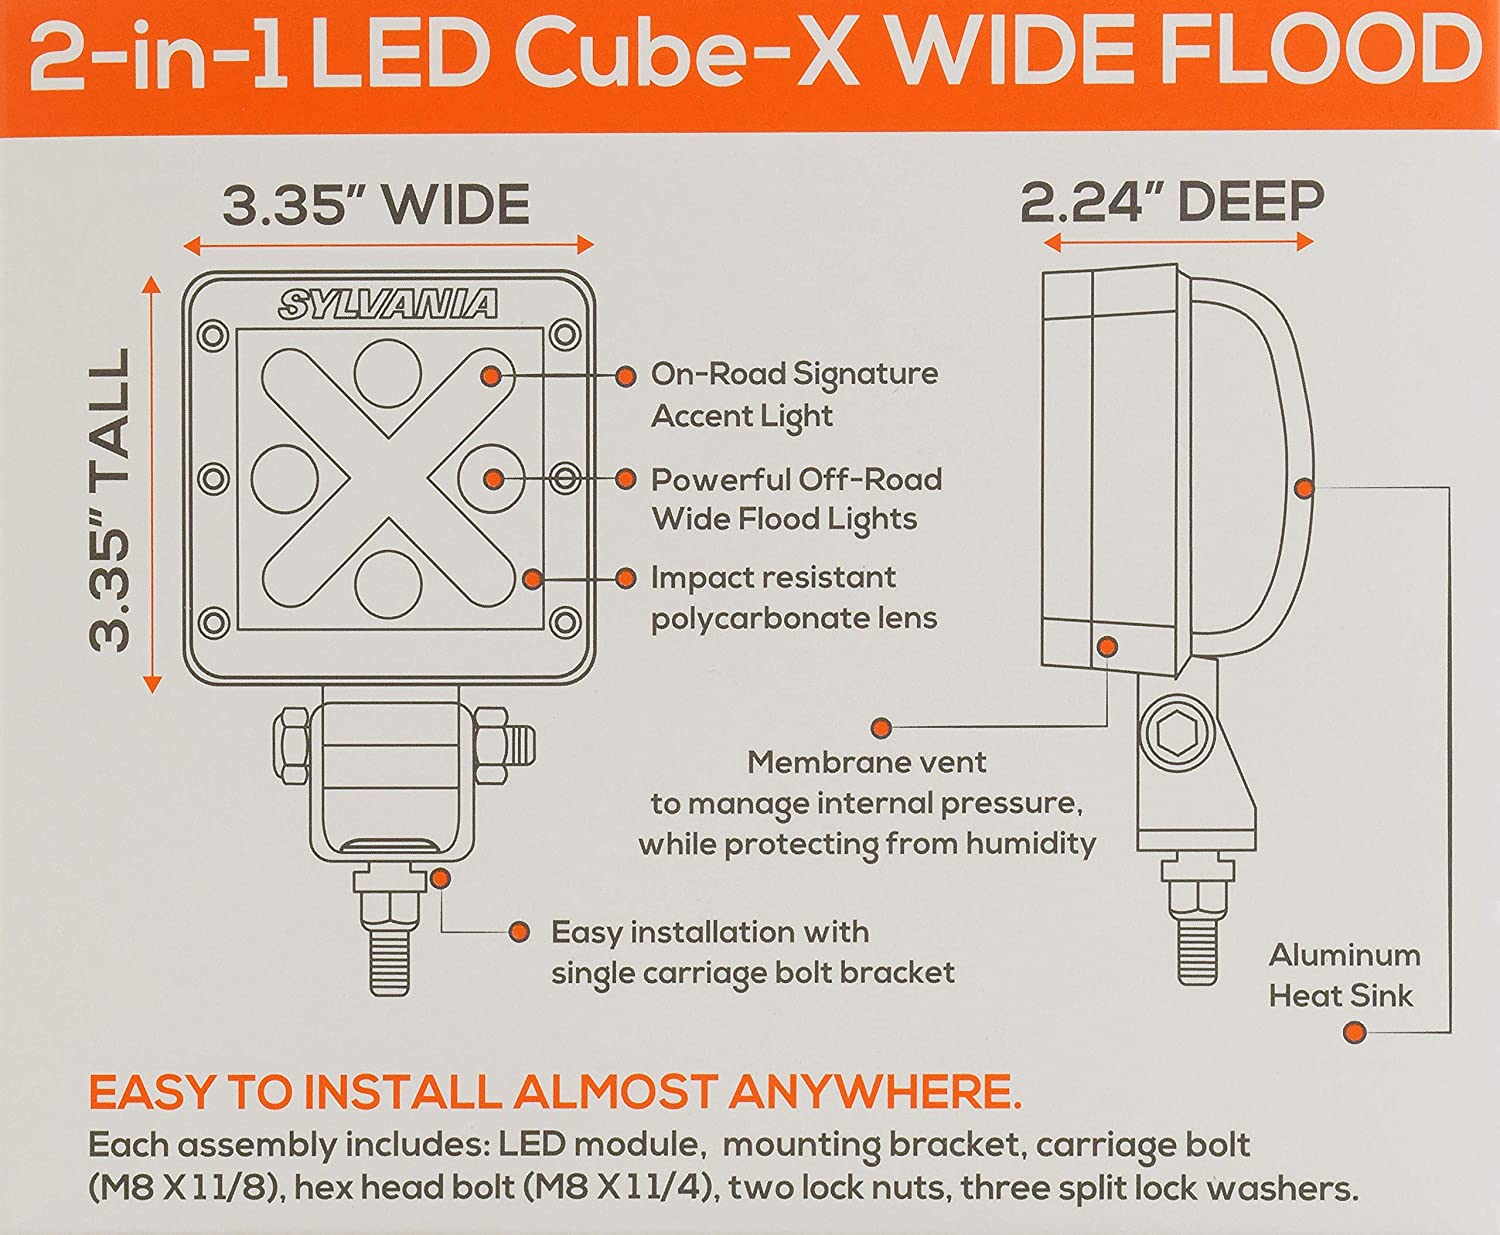 Sylvania Led Cube X Off Road Wide Flood Light Contains 1 X11 Wiring Diagram Car Motorbike